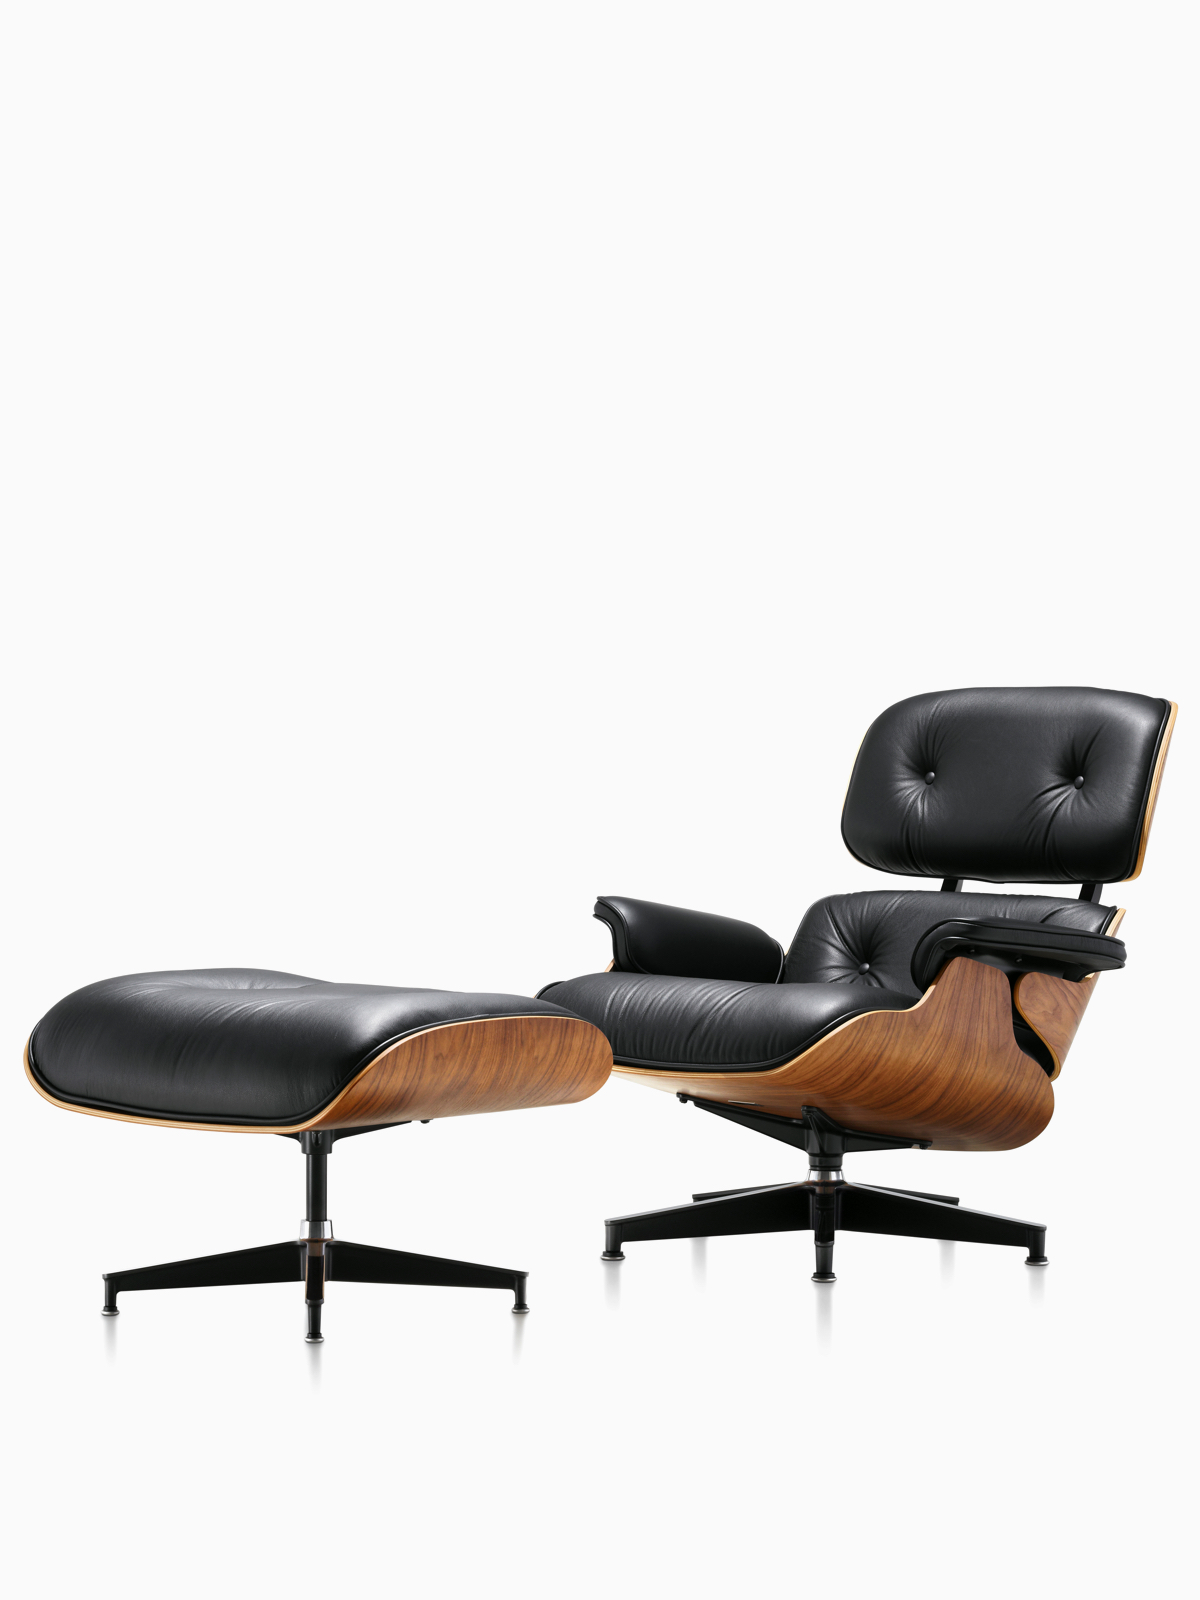 Sedia Wooden Eames Eames Lounge And Ottoman Lounge Chair Herman Miller